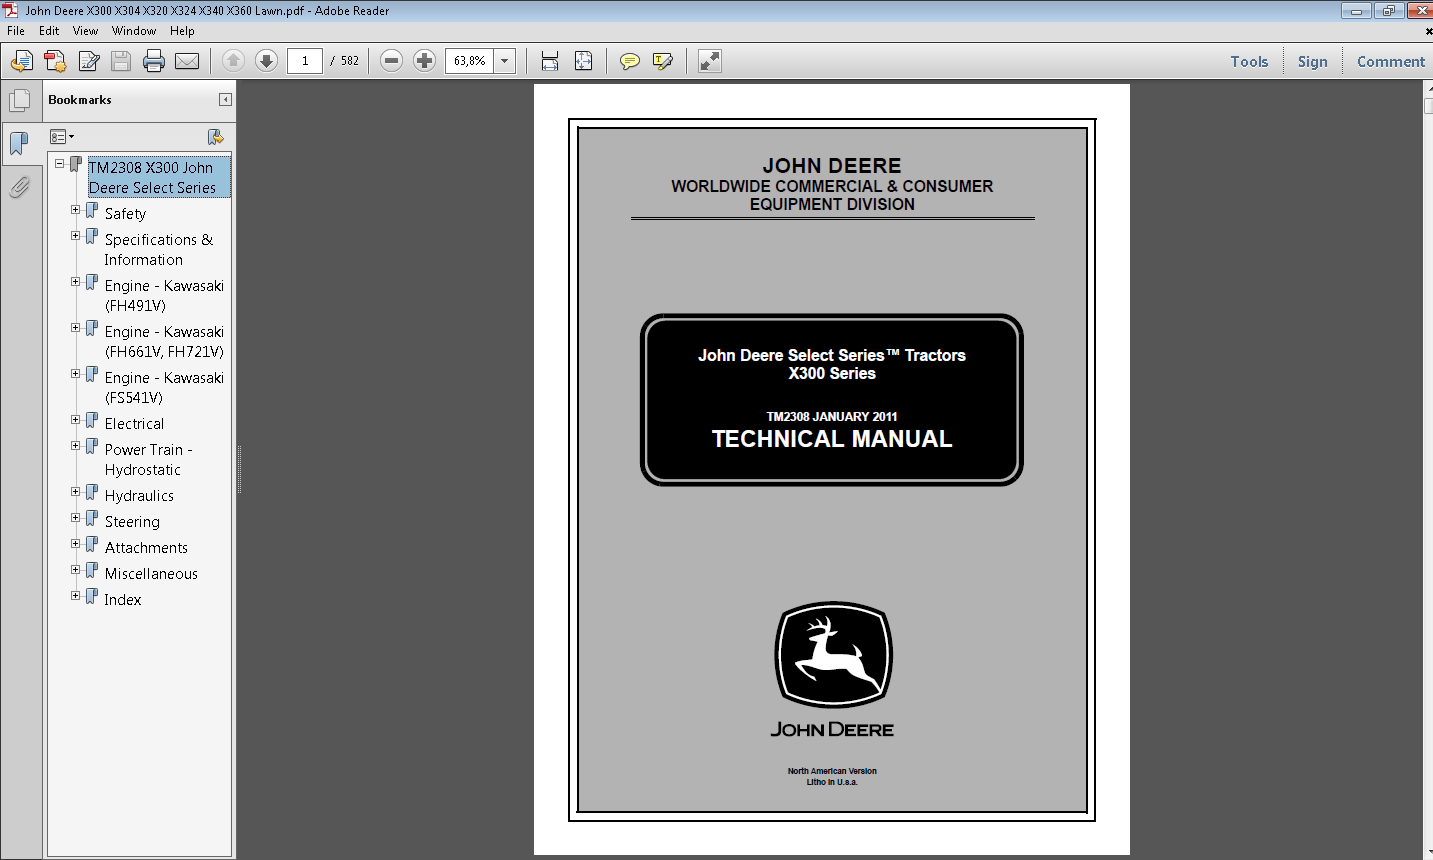 John Deere X300 Select Series Tractors Service Repair Manual Guide